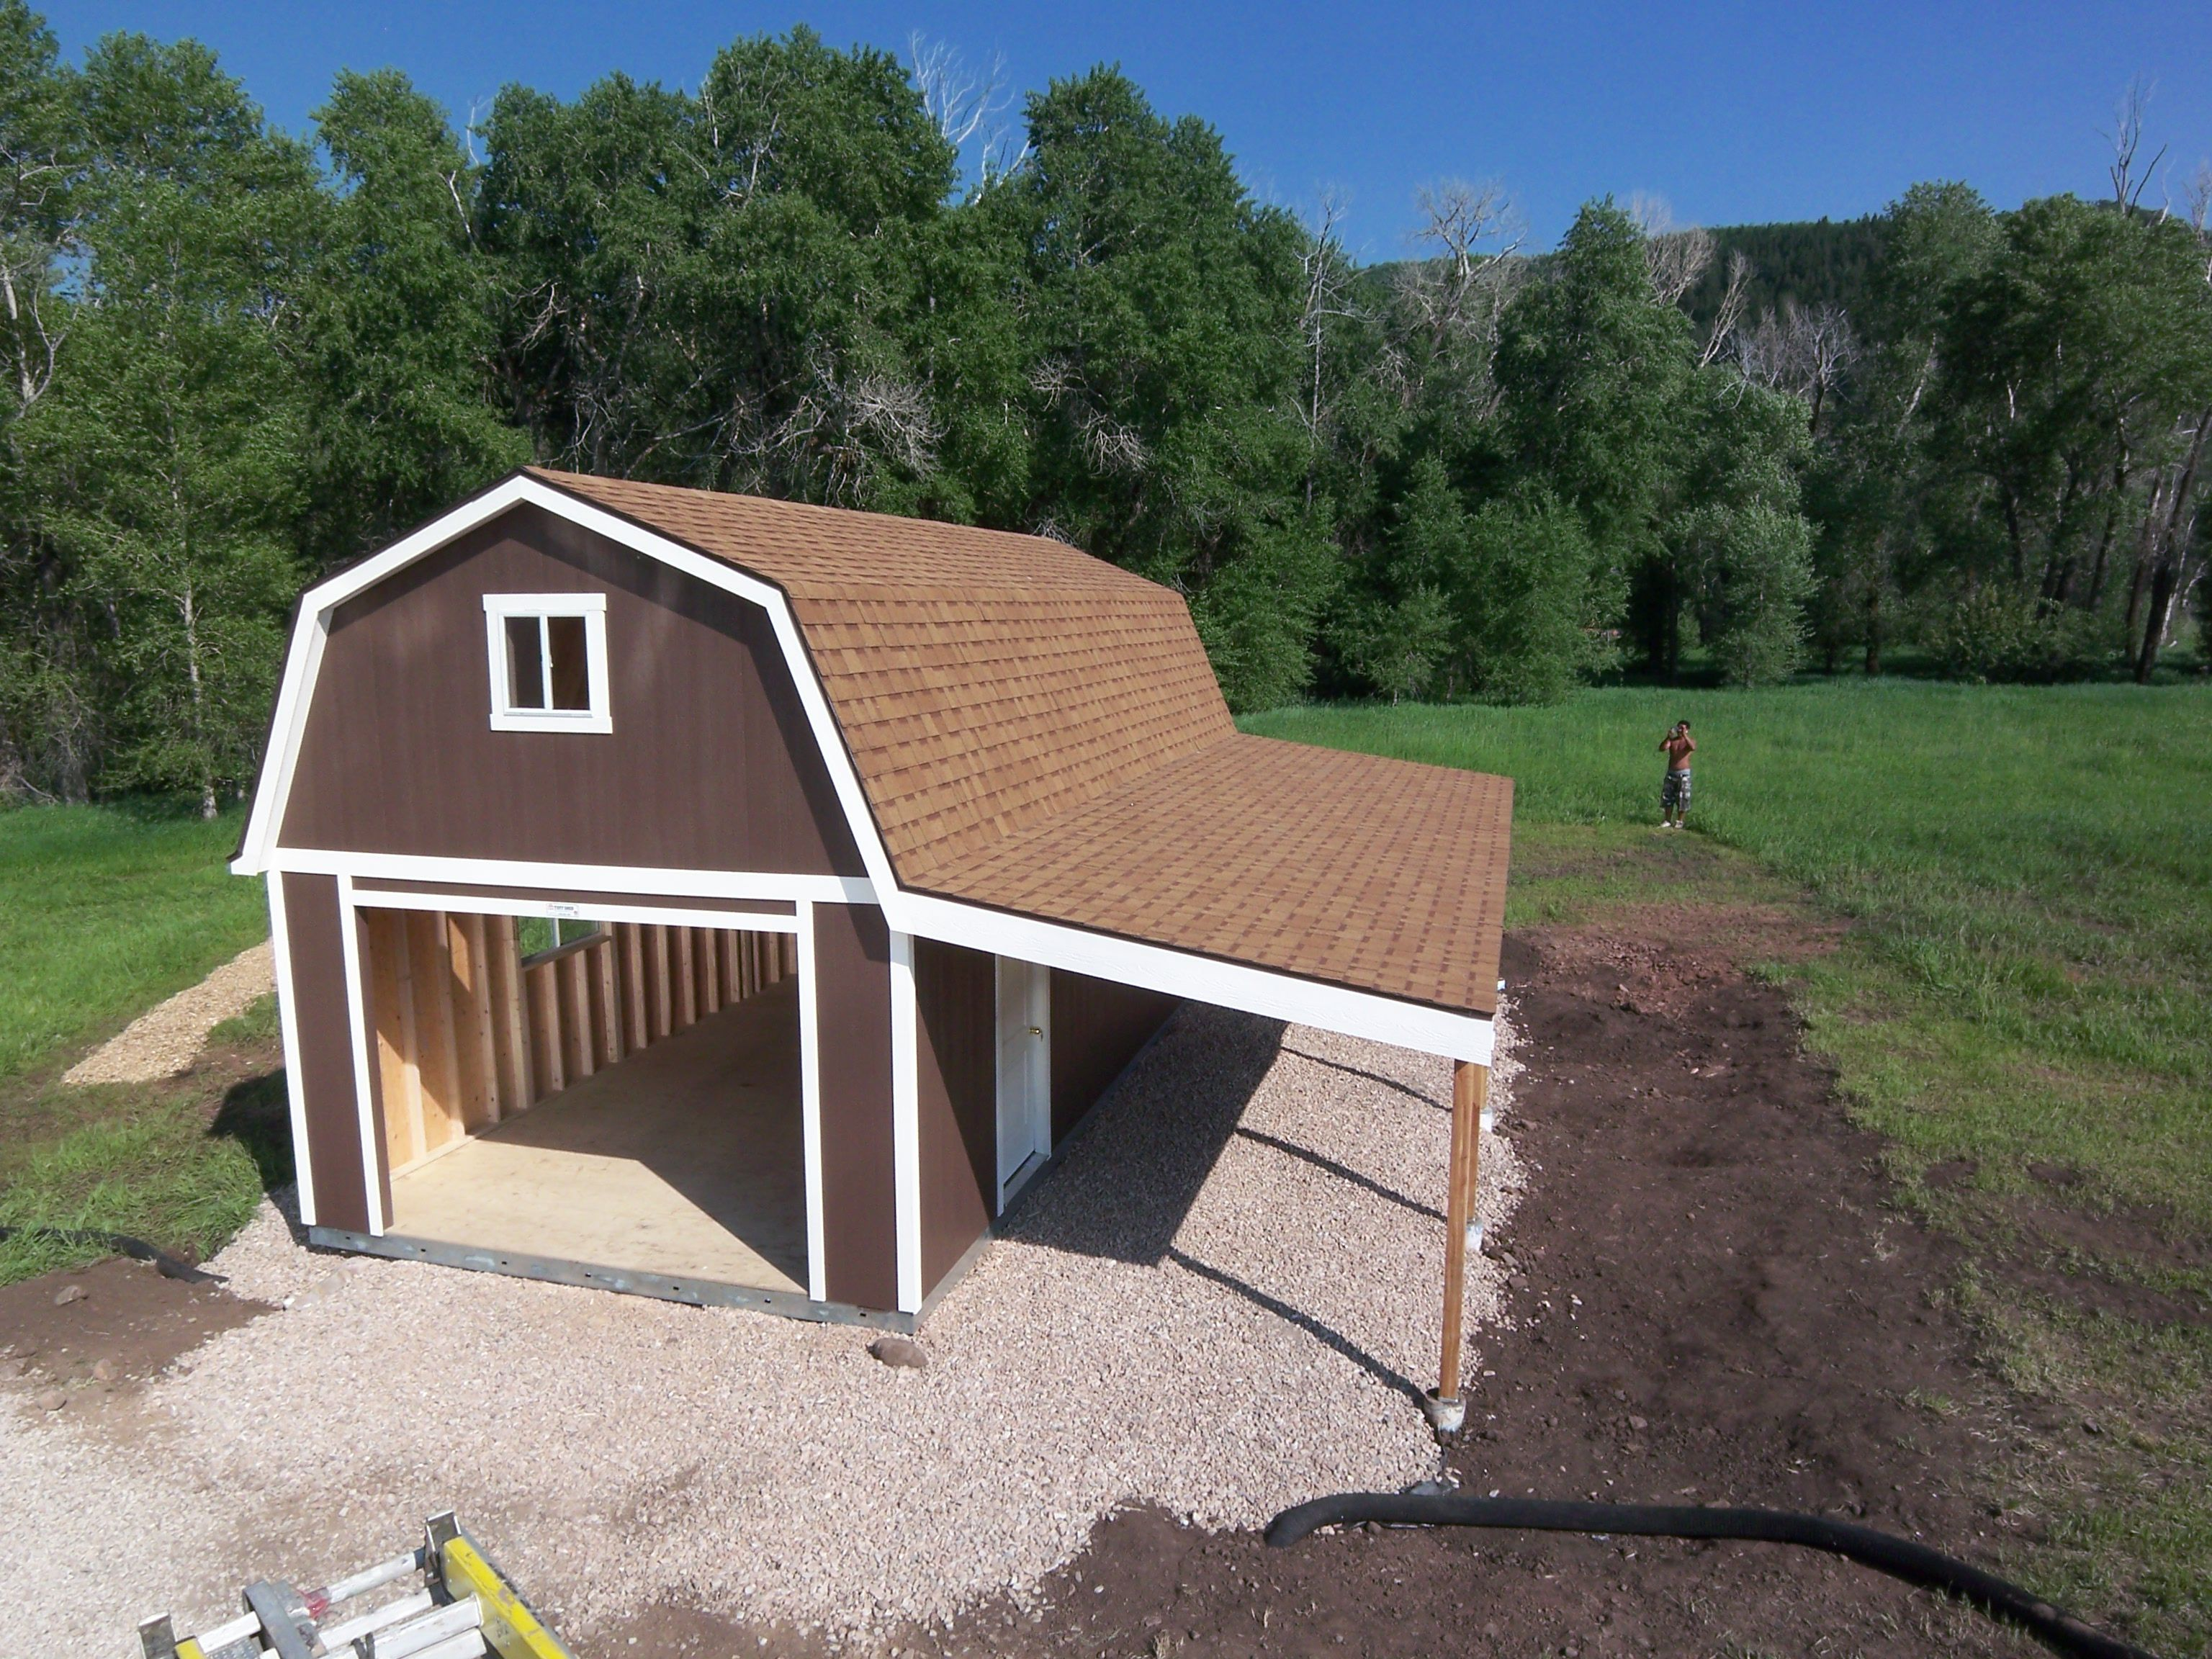 Incroyable This Tuff Shed Garage Has All. Barn GarageGarage WorkshopBackyard Gazebo Barns ...